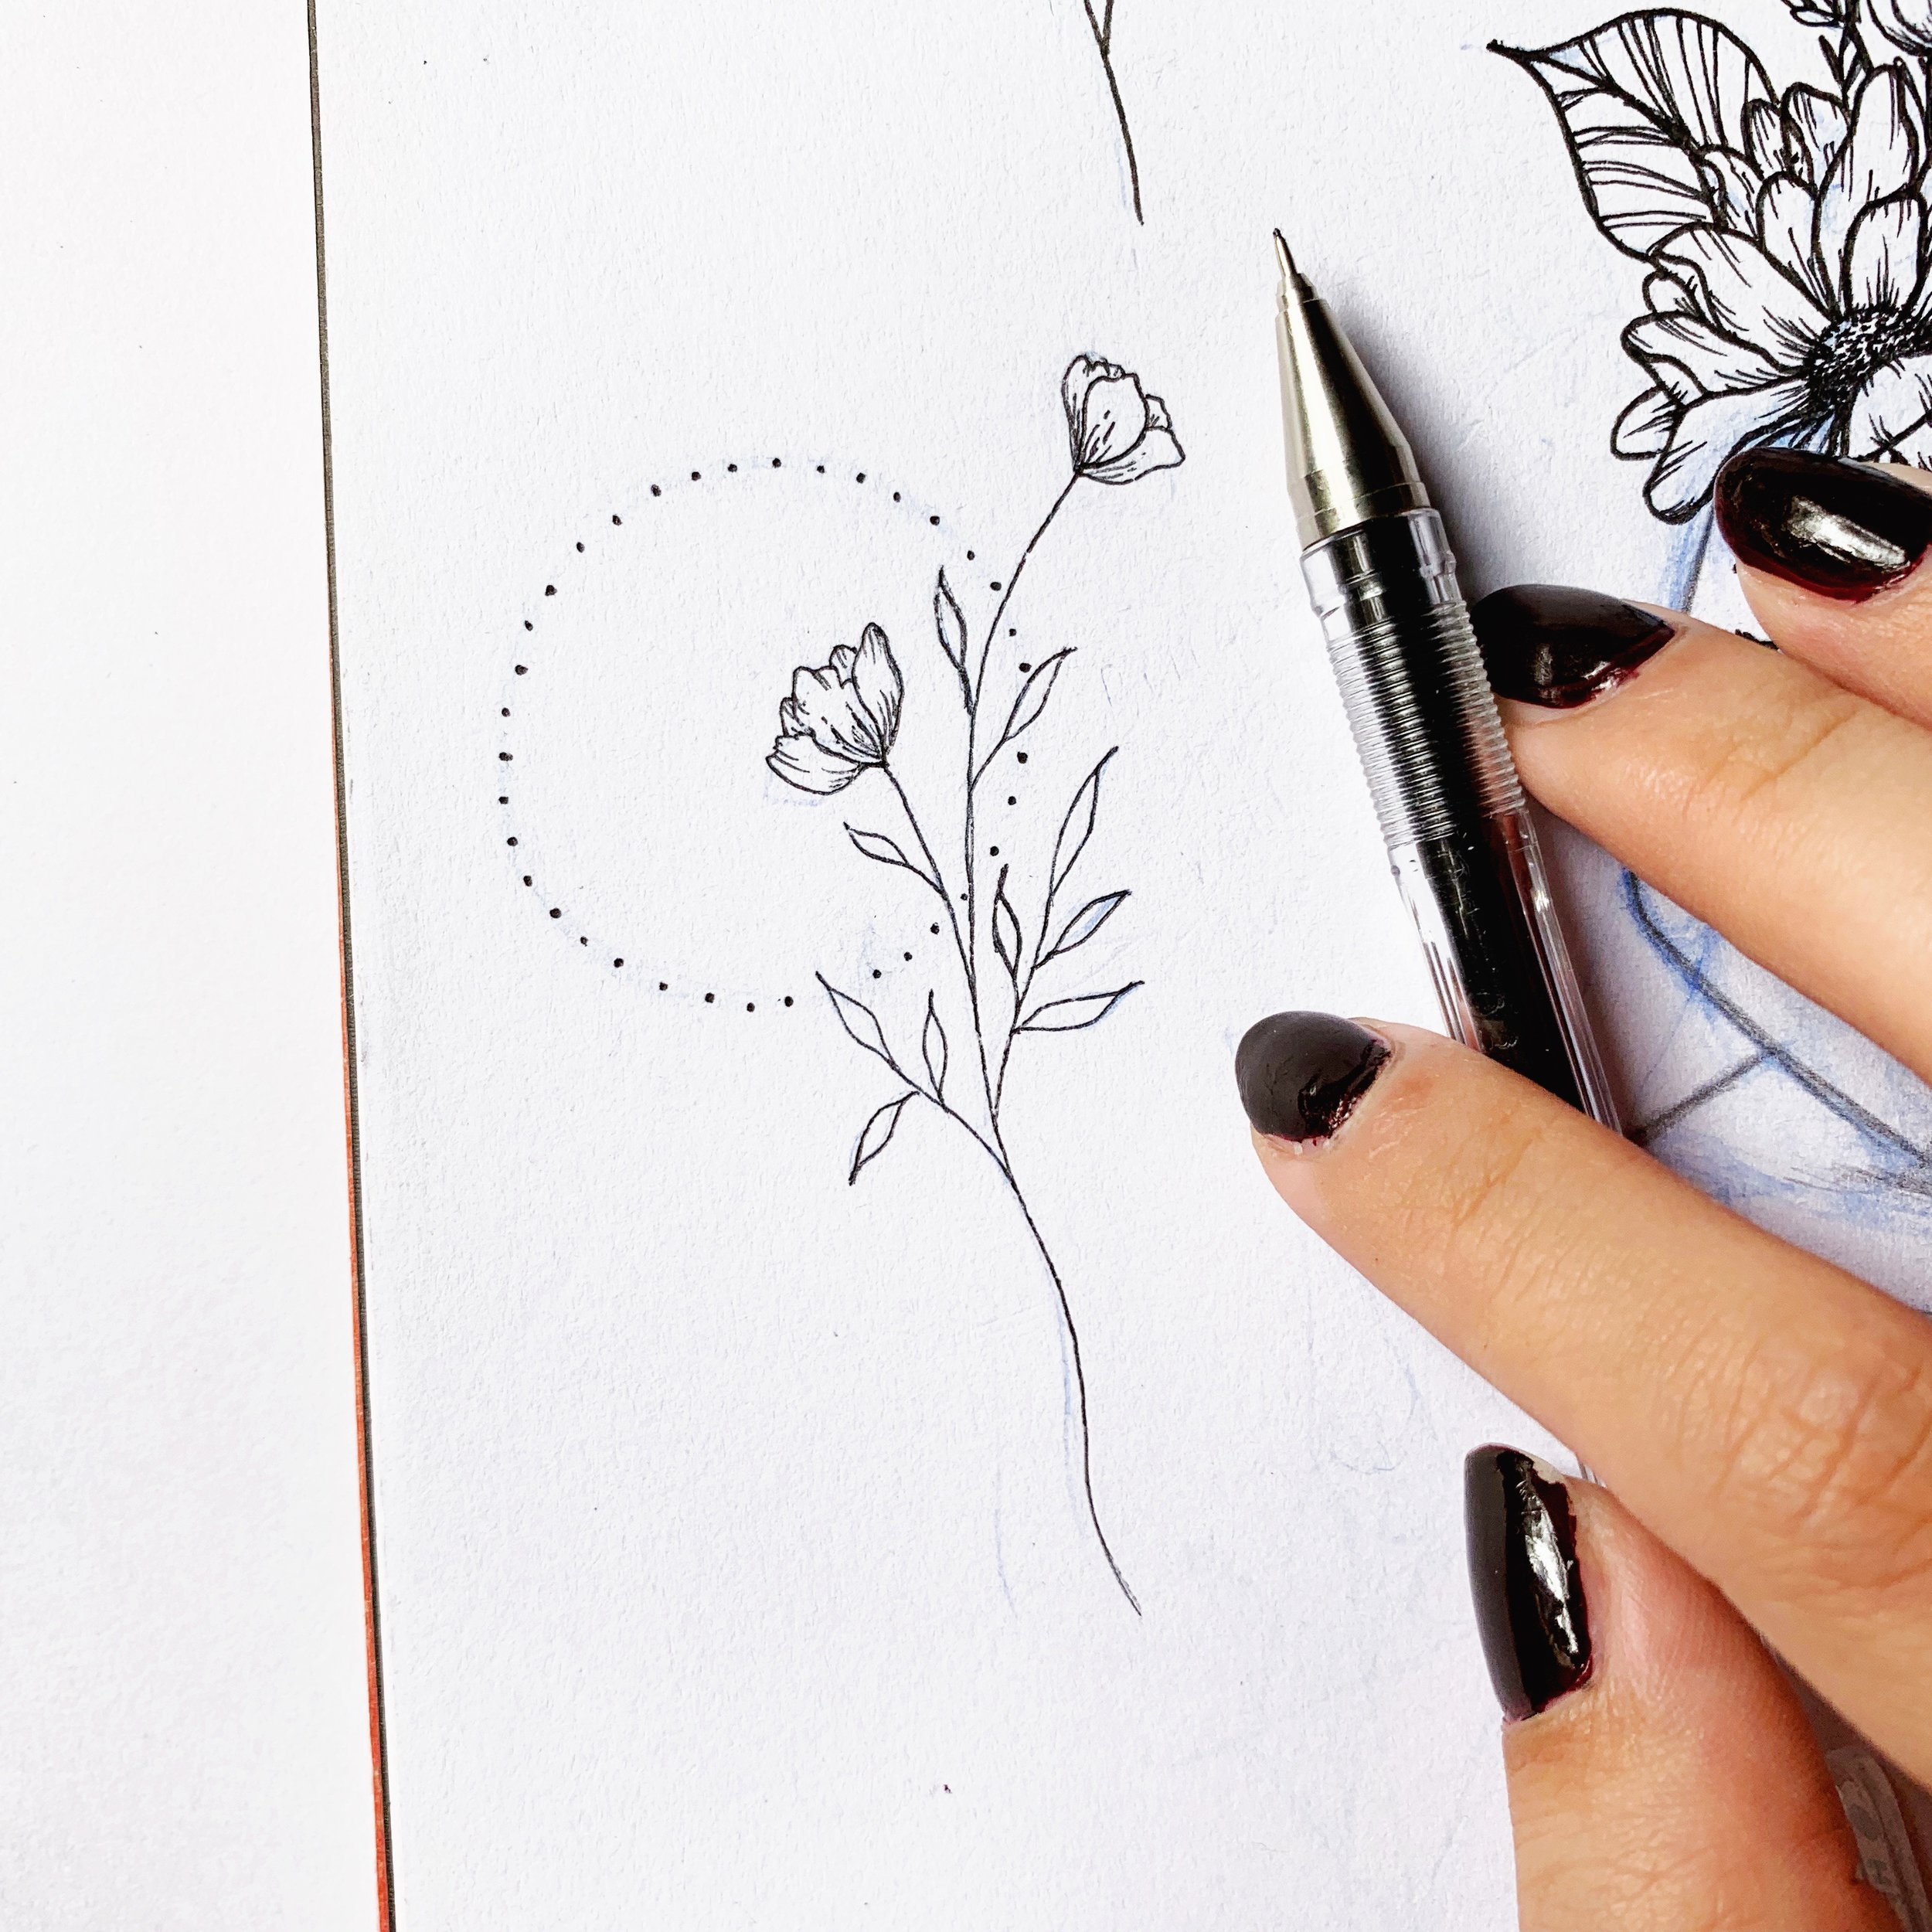 Minimalistic floral design, later adapted for a tattoo design.